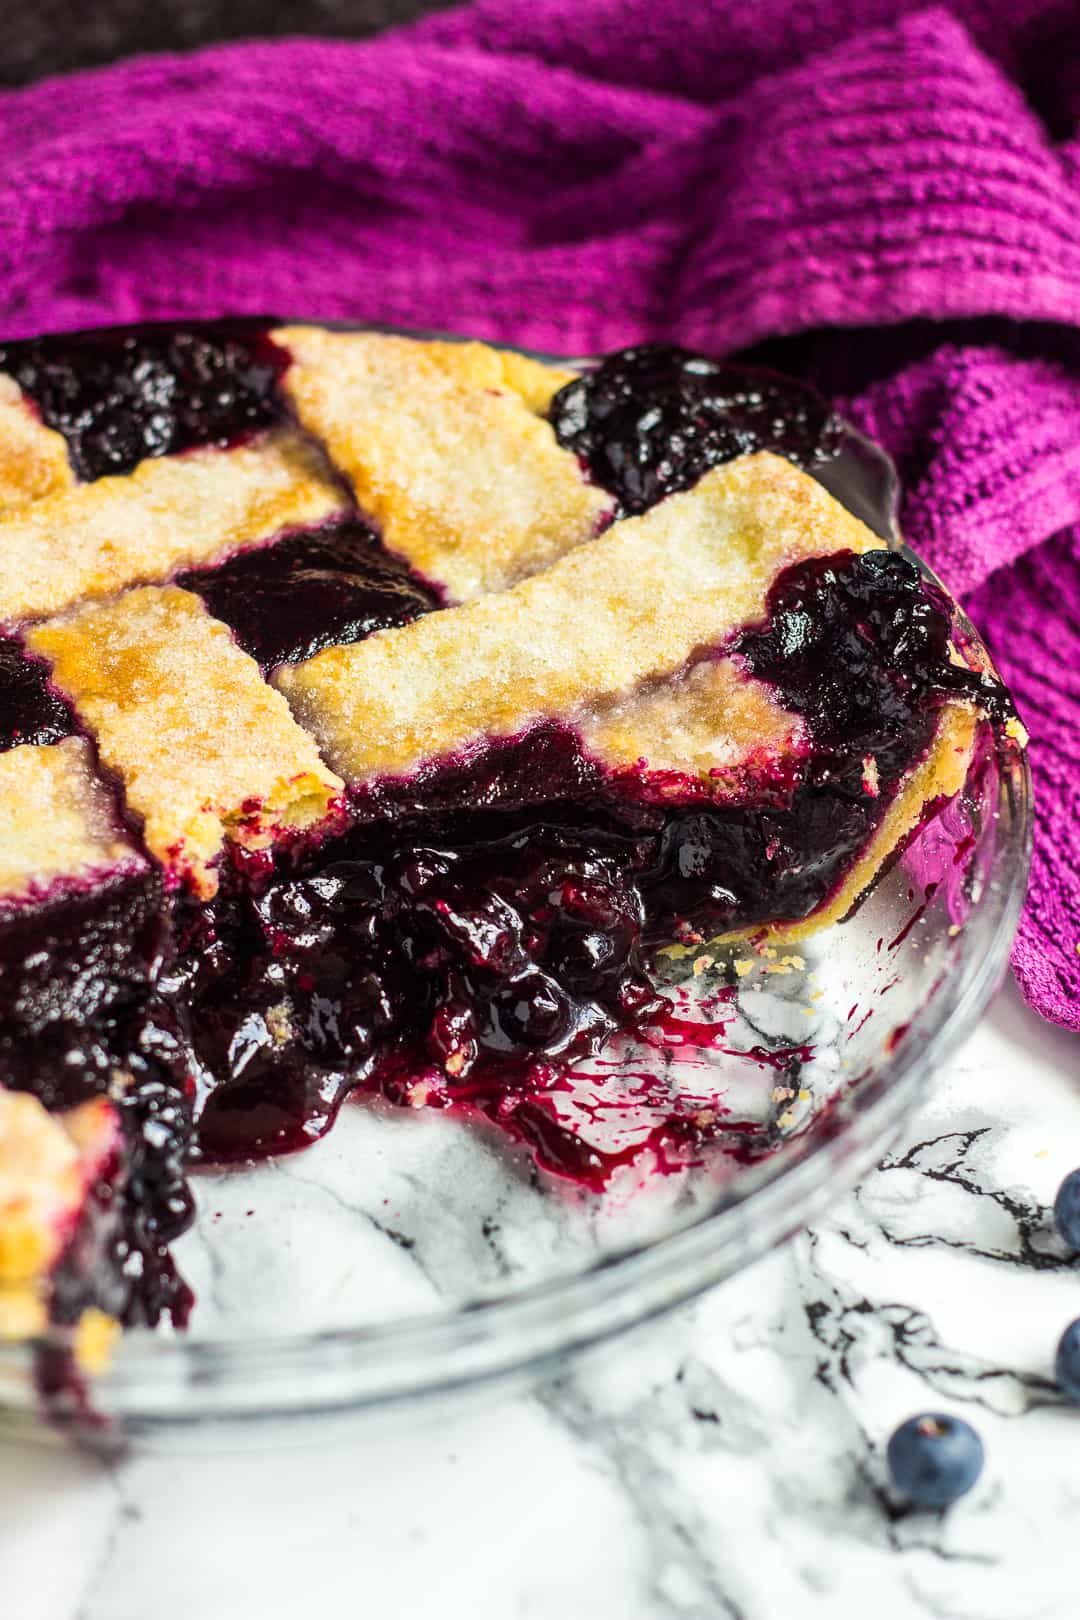 Homemade blueberry pie with slices removed to see the blueberry filling.